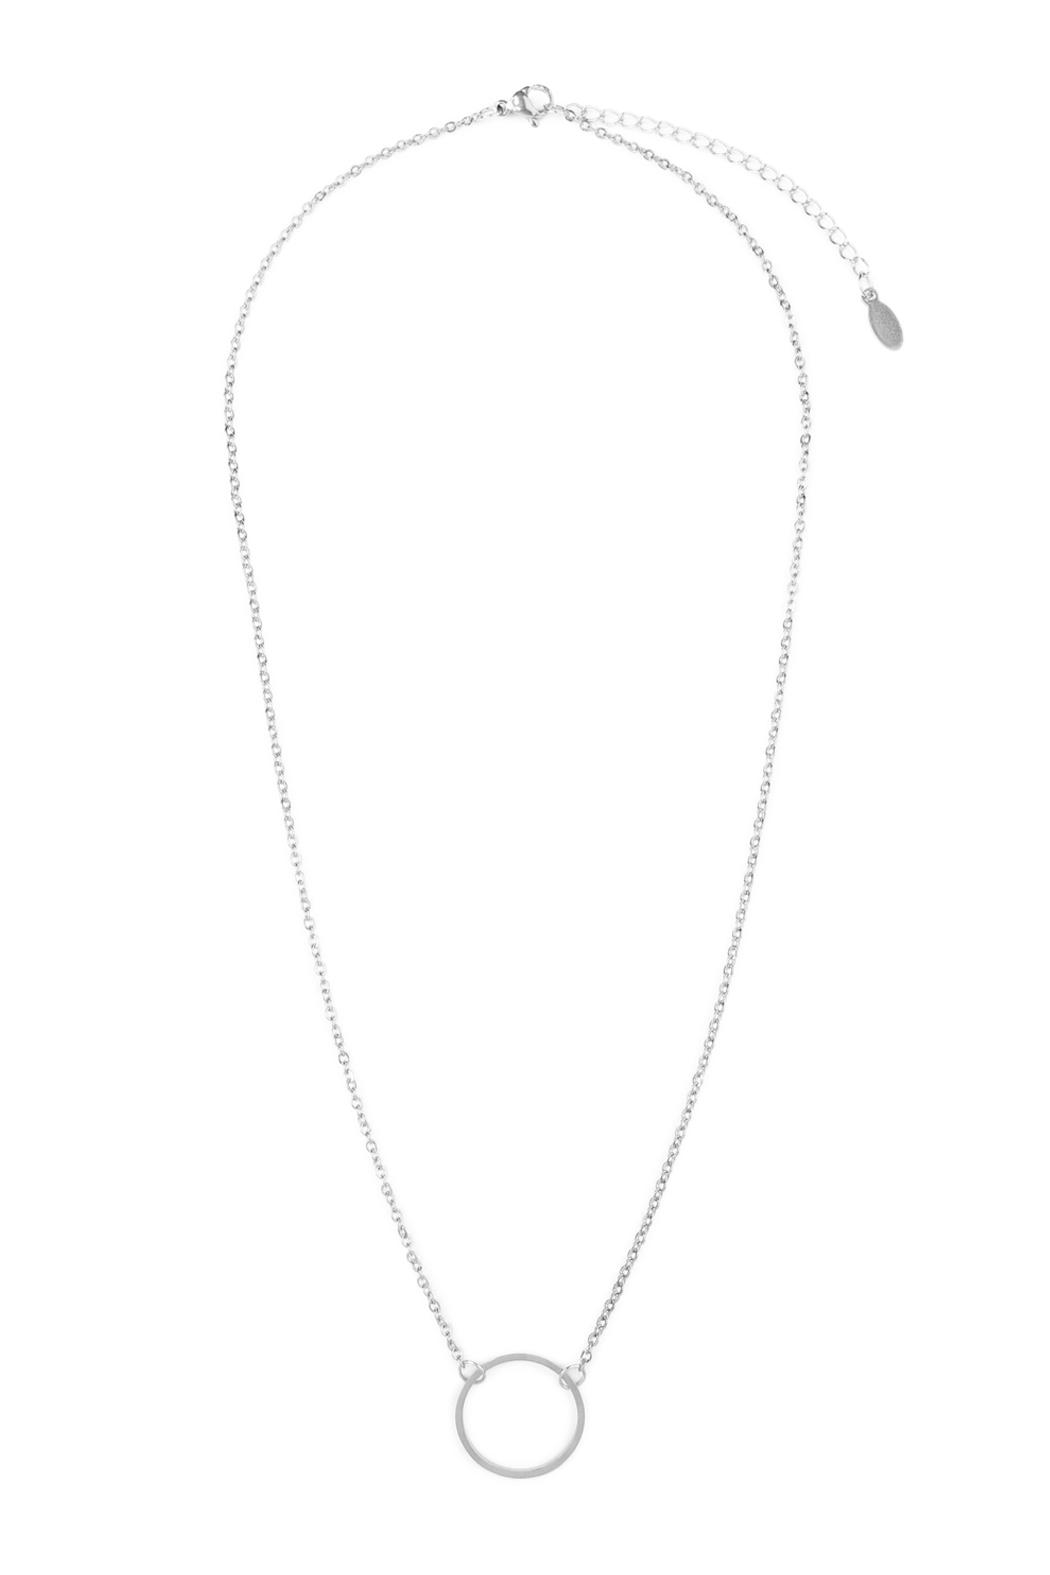 Riah fashion circle pendant necklace from california shoptiques riah fashion circle pendant necklace front cropped image aloadofball Choice Image